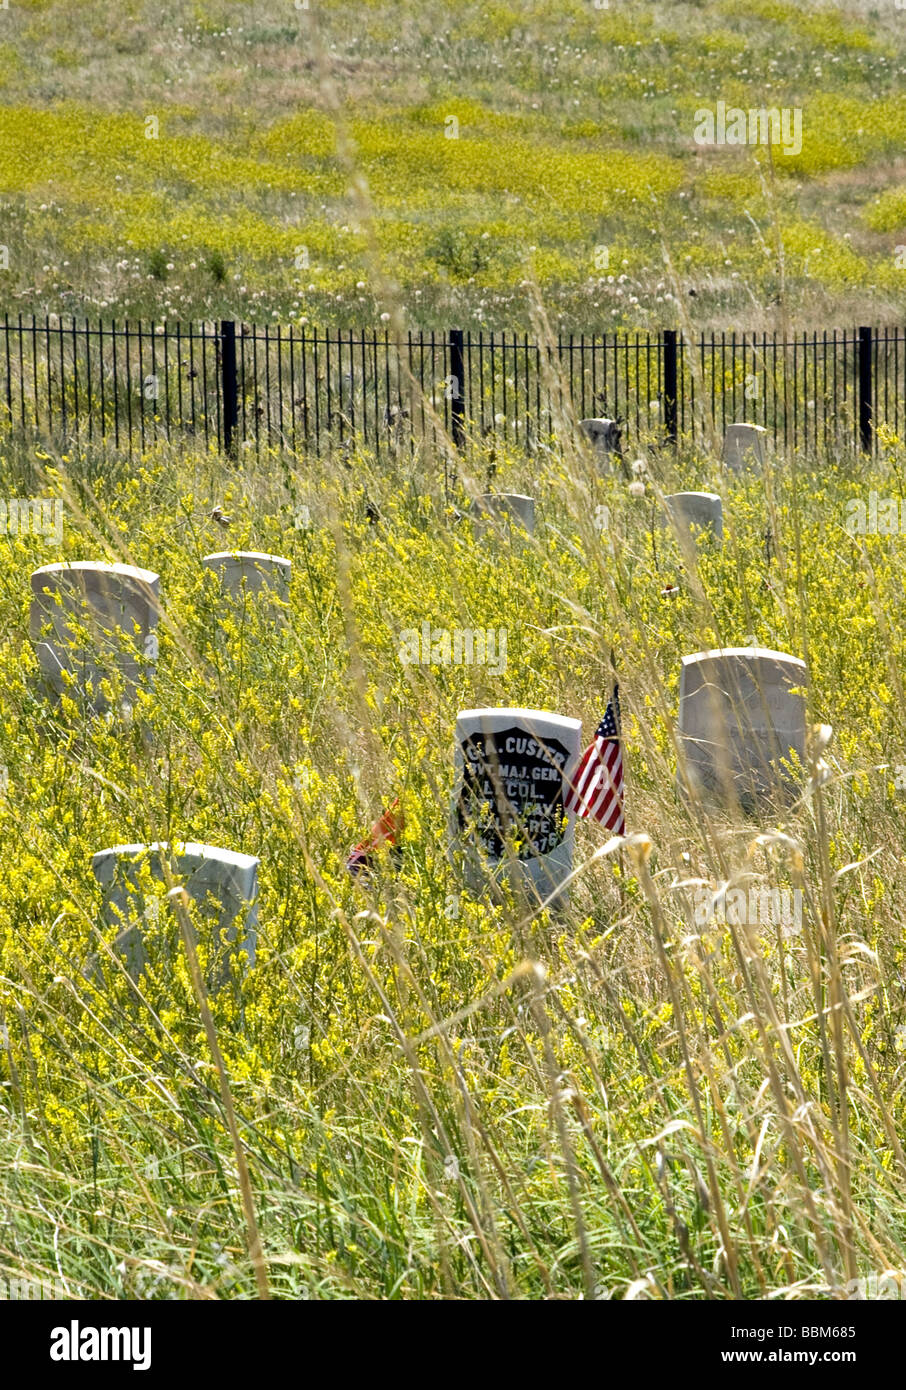 Lt. Col. George A. Custer's headstone, Little Bighorn Battlefield National Monument., Big Horn County, Montana. - Stock Image